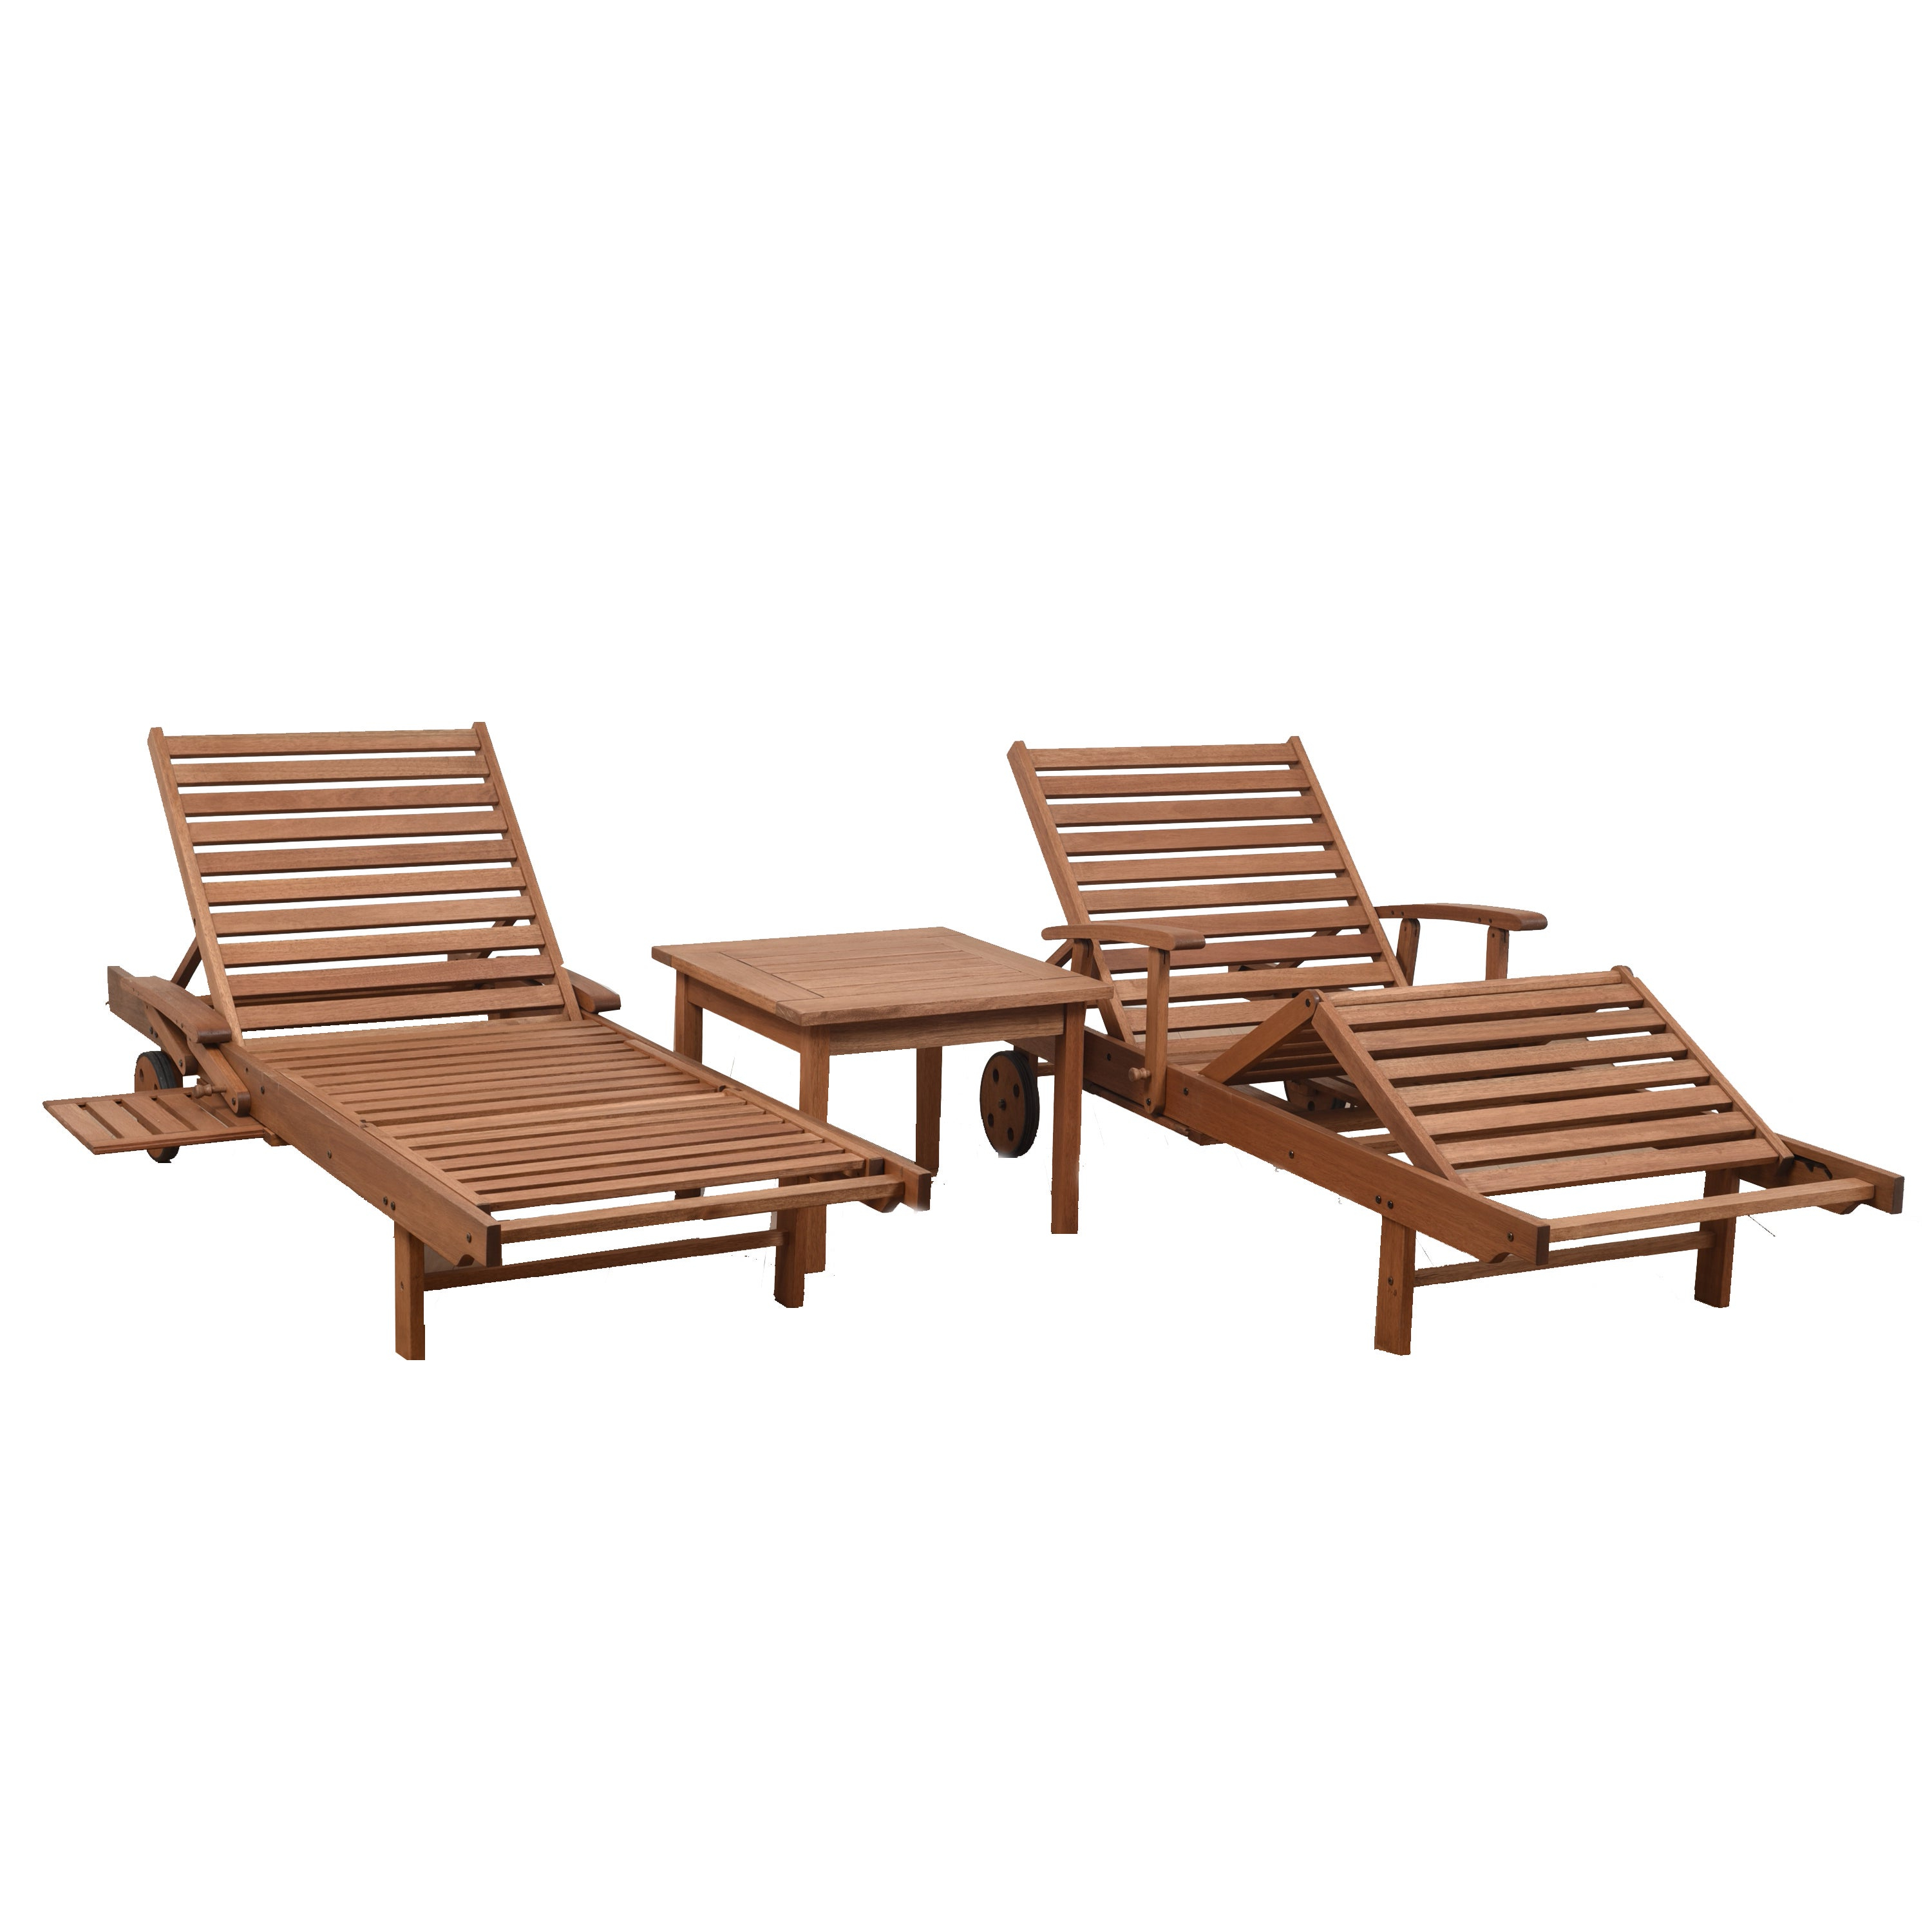 Widely Used Havenside Home Tottenville Eucalyptus Loungers Inside Havenside Home Tottenville Natural Eucalyptus 3 Piece Patio Lounger Set (View 6 of 25)